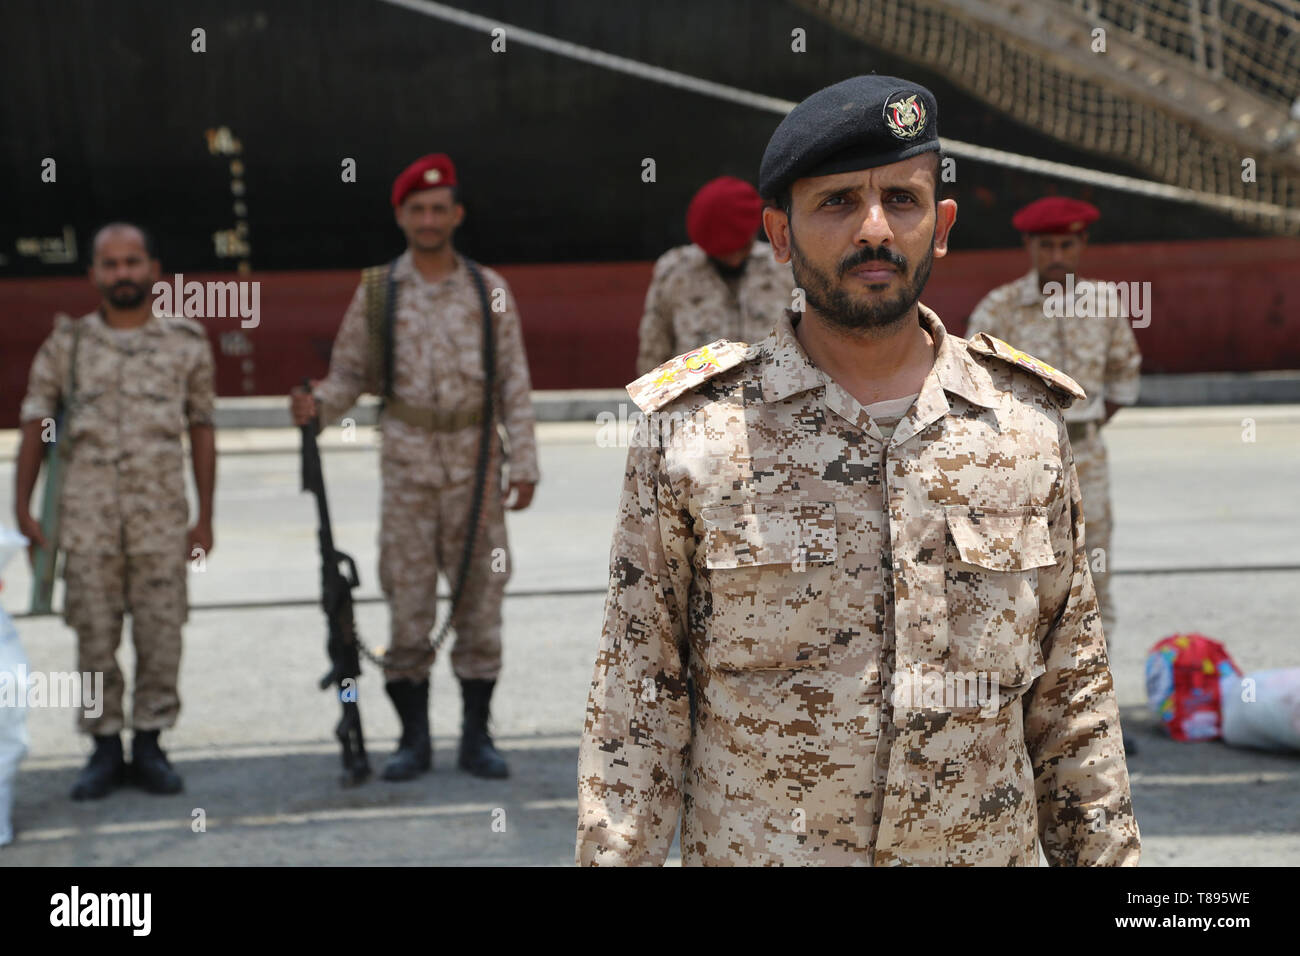 (190511) -- HODEIDAH (YEMEN), May 11, 2019 (Xinhua) -- Houthi members stand at attention during their withdrawal from Salif port in Hodeidah, Yemen, on May 11, 2019. Yemen's Houthi rebels began on Saturday withdrawal from two ports of Hodeidah Province, eyewitnesses said. (Xinhua) Stock Photo